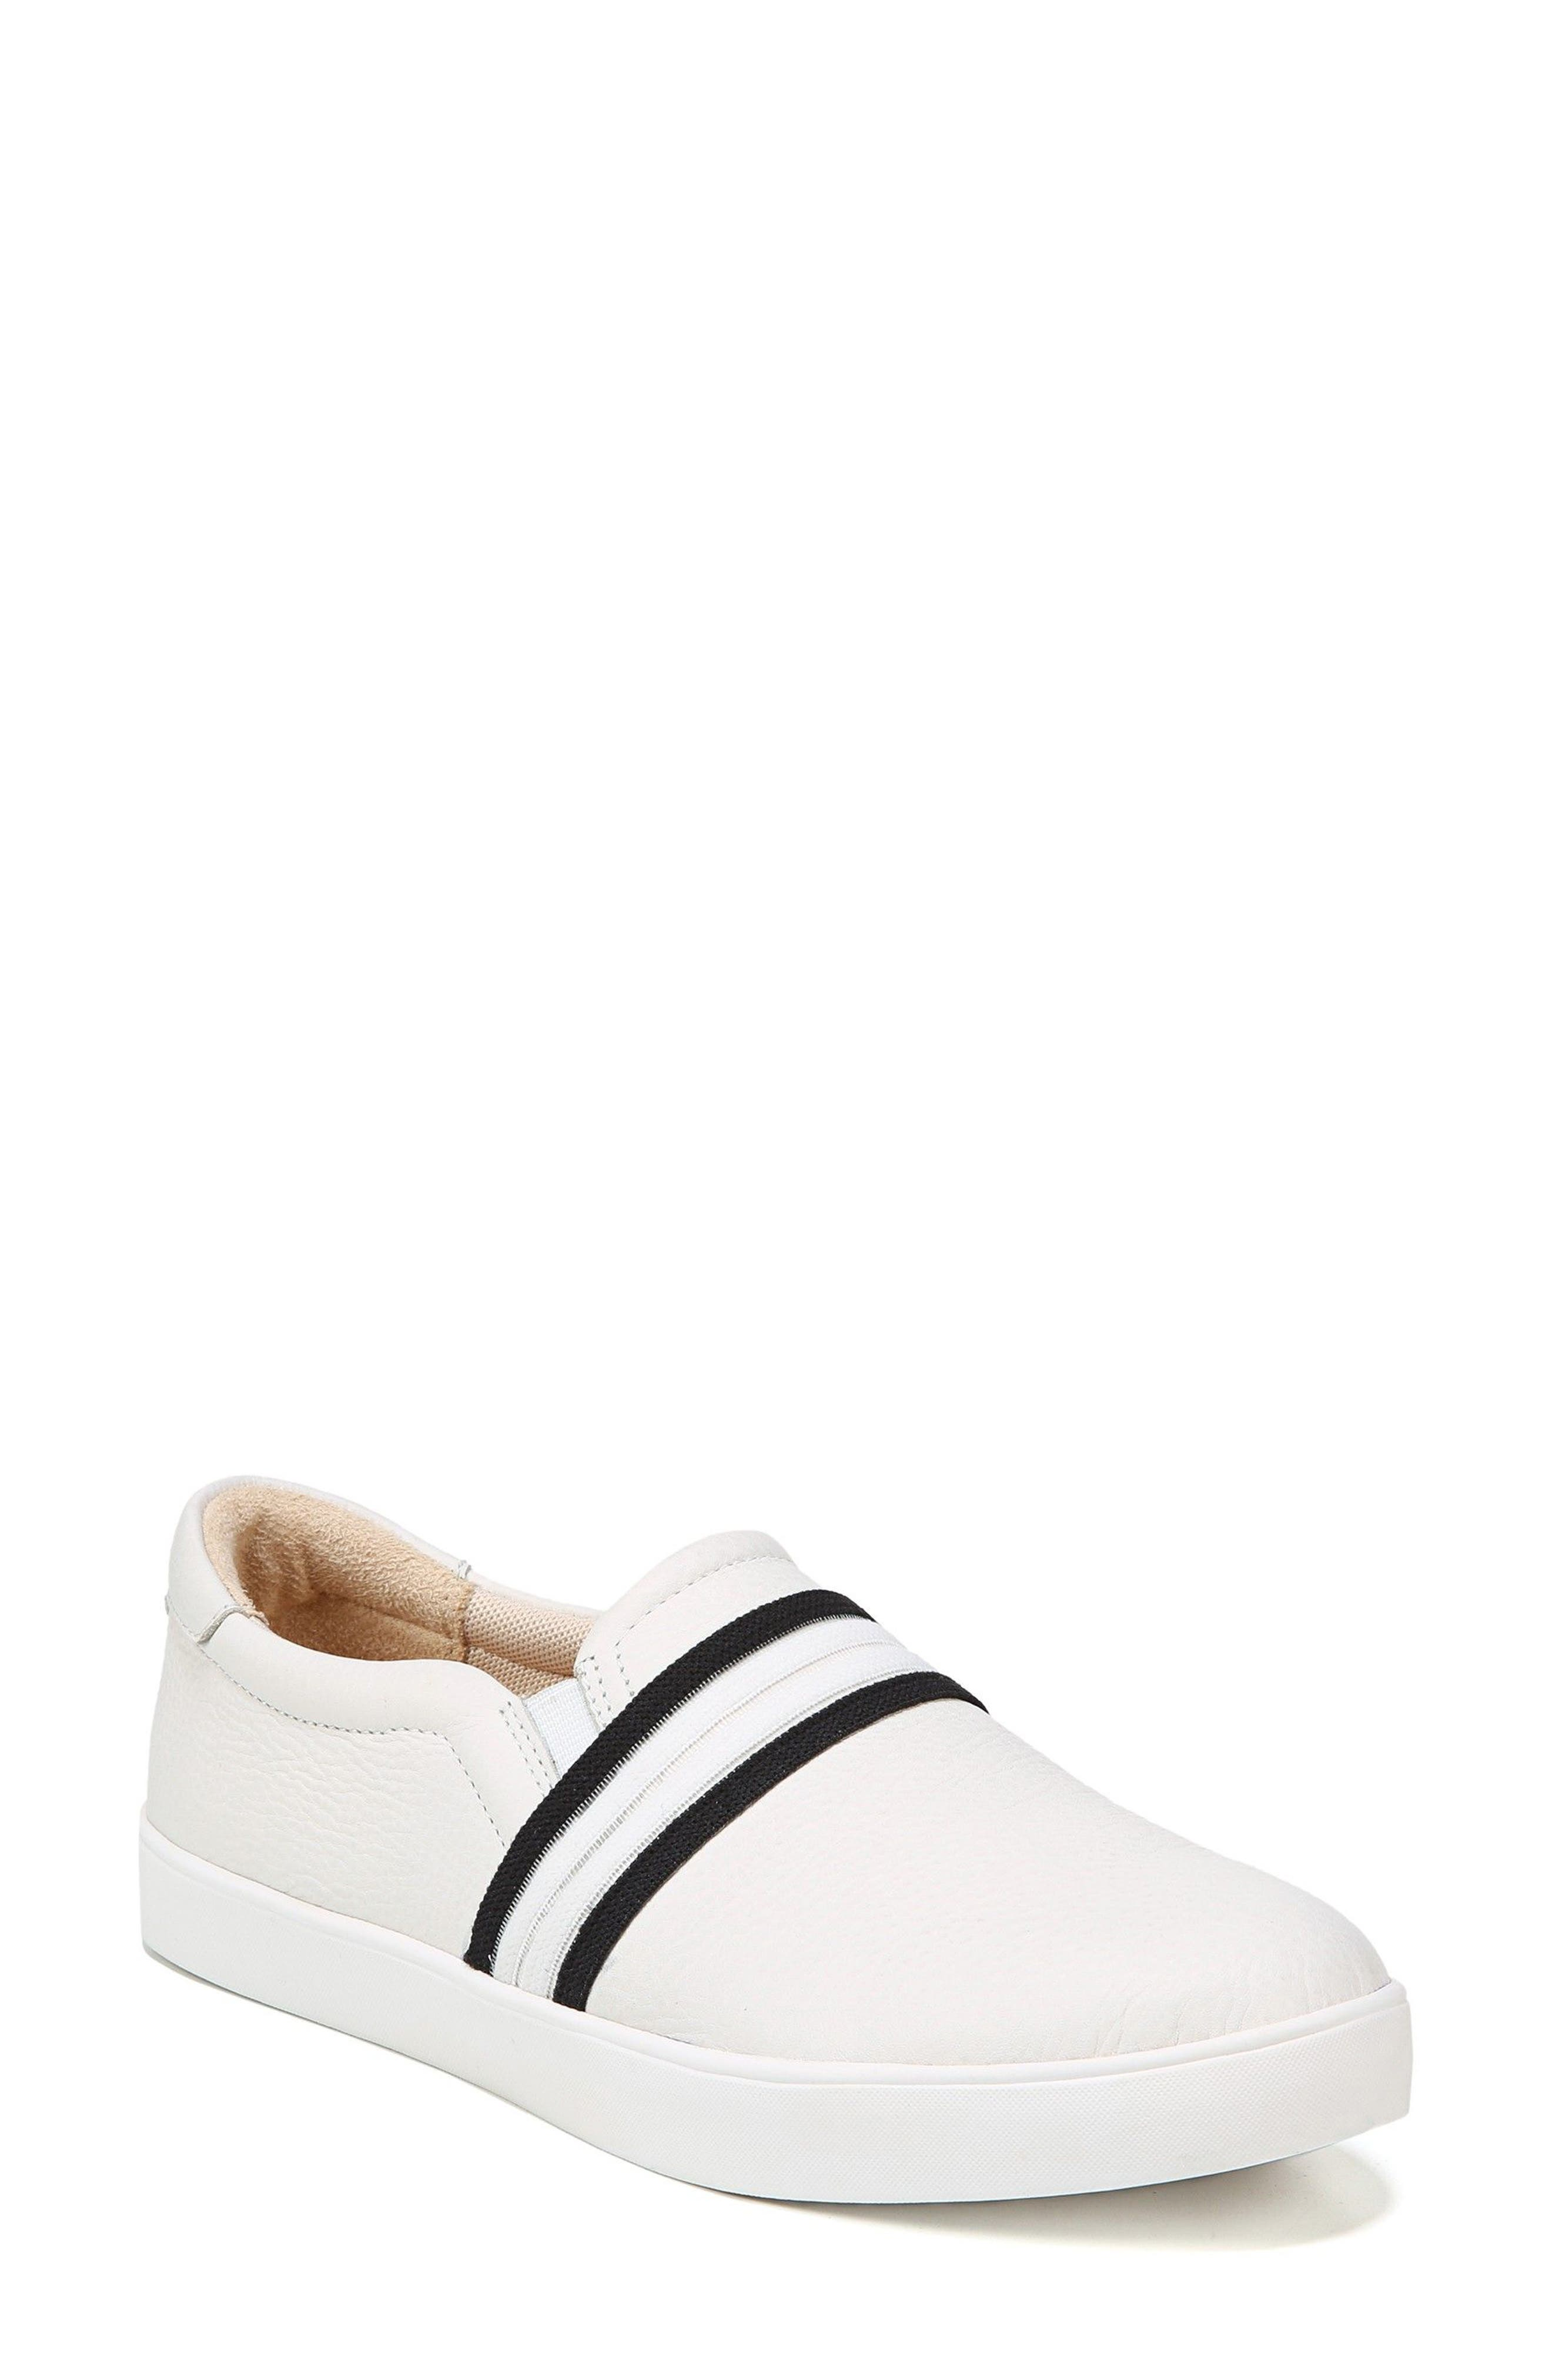 Scout Slip-On Sneaker,                             Main thumbnail 1, color,                             White Leather